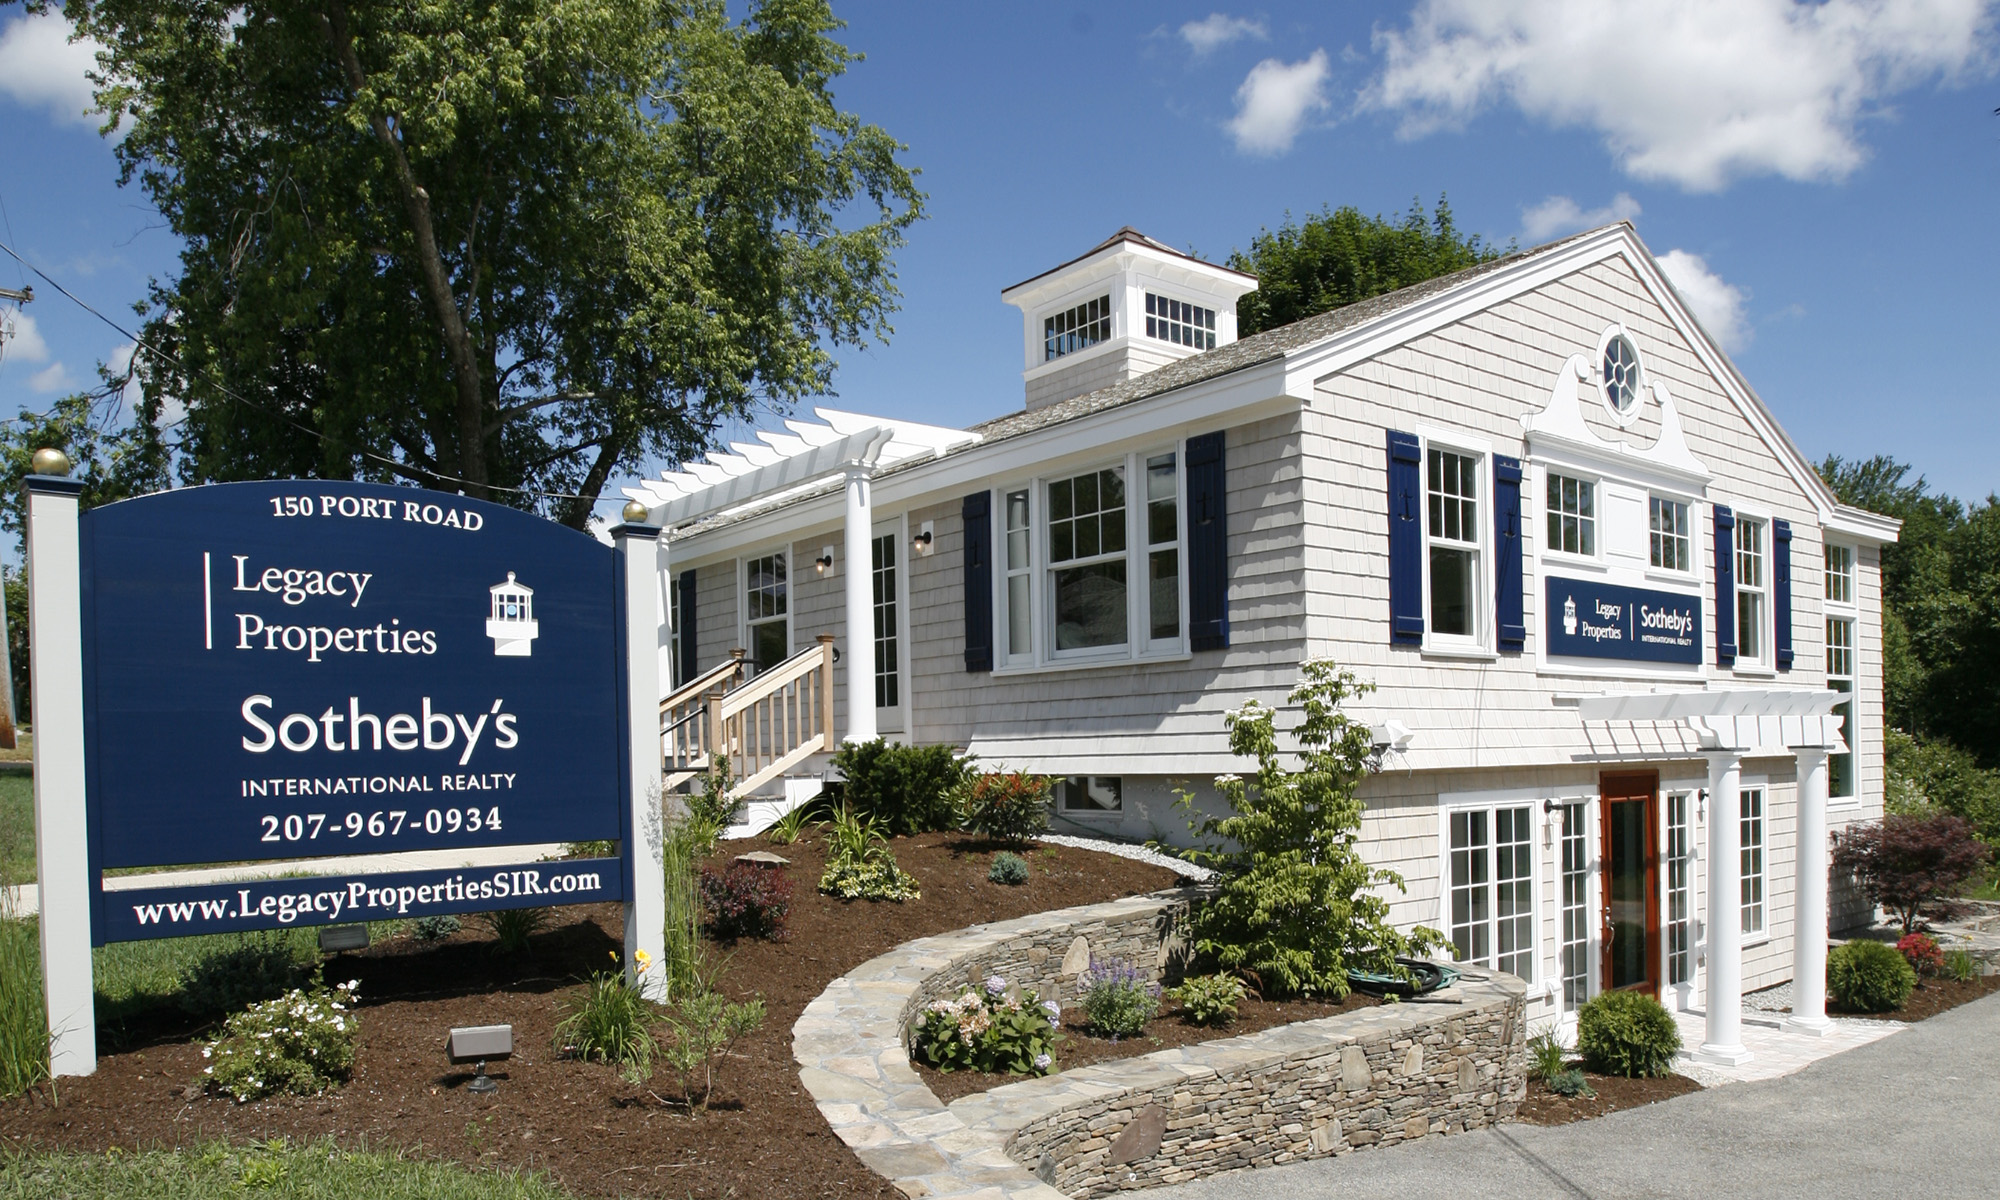 Office Legacy Properties Sotheby's International Realty Photo